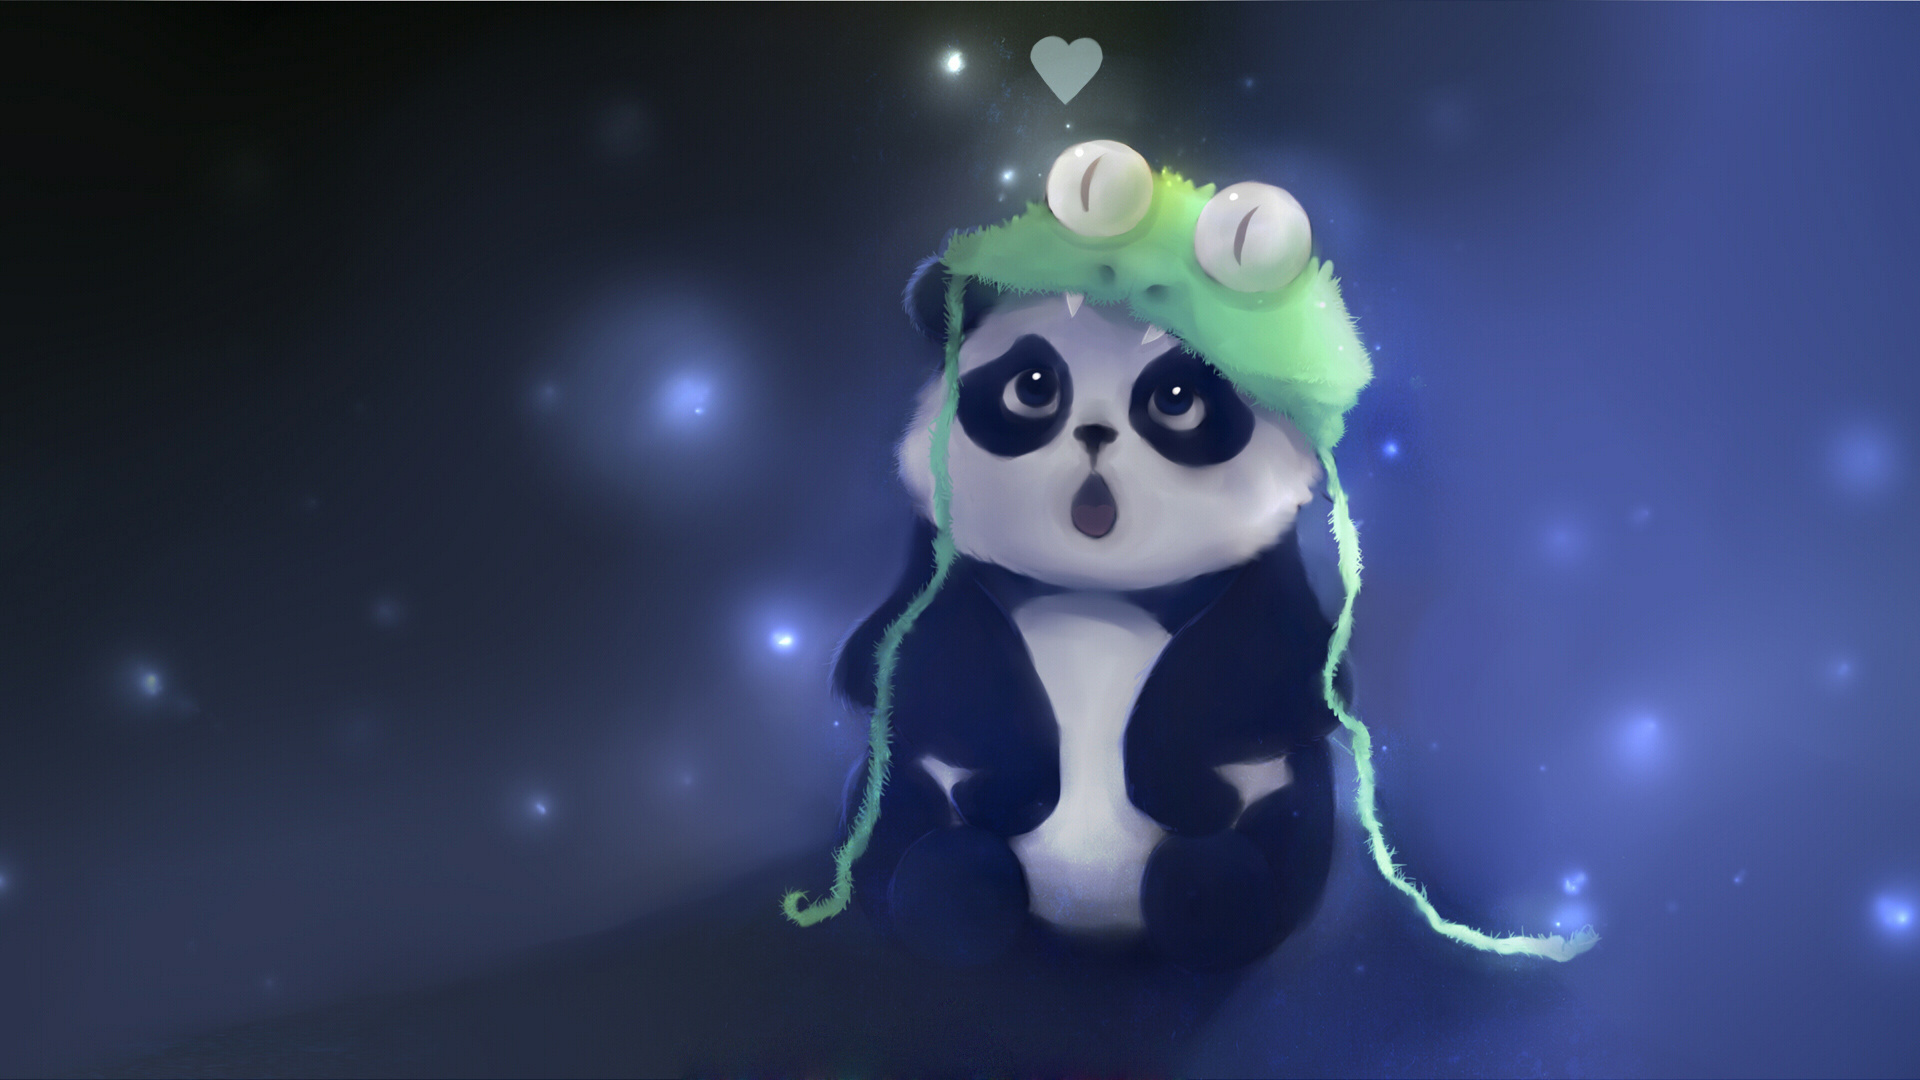 Hd wallpaper cartoon - Panda Cartoon Hd Wallpaper